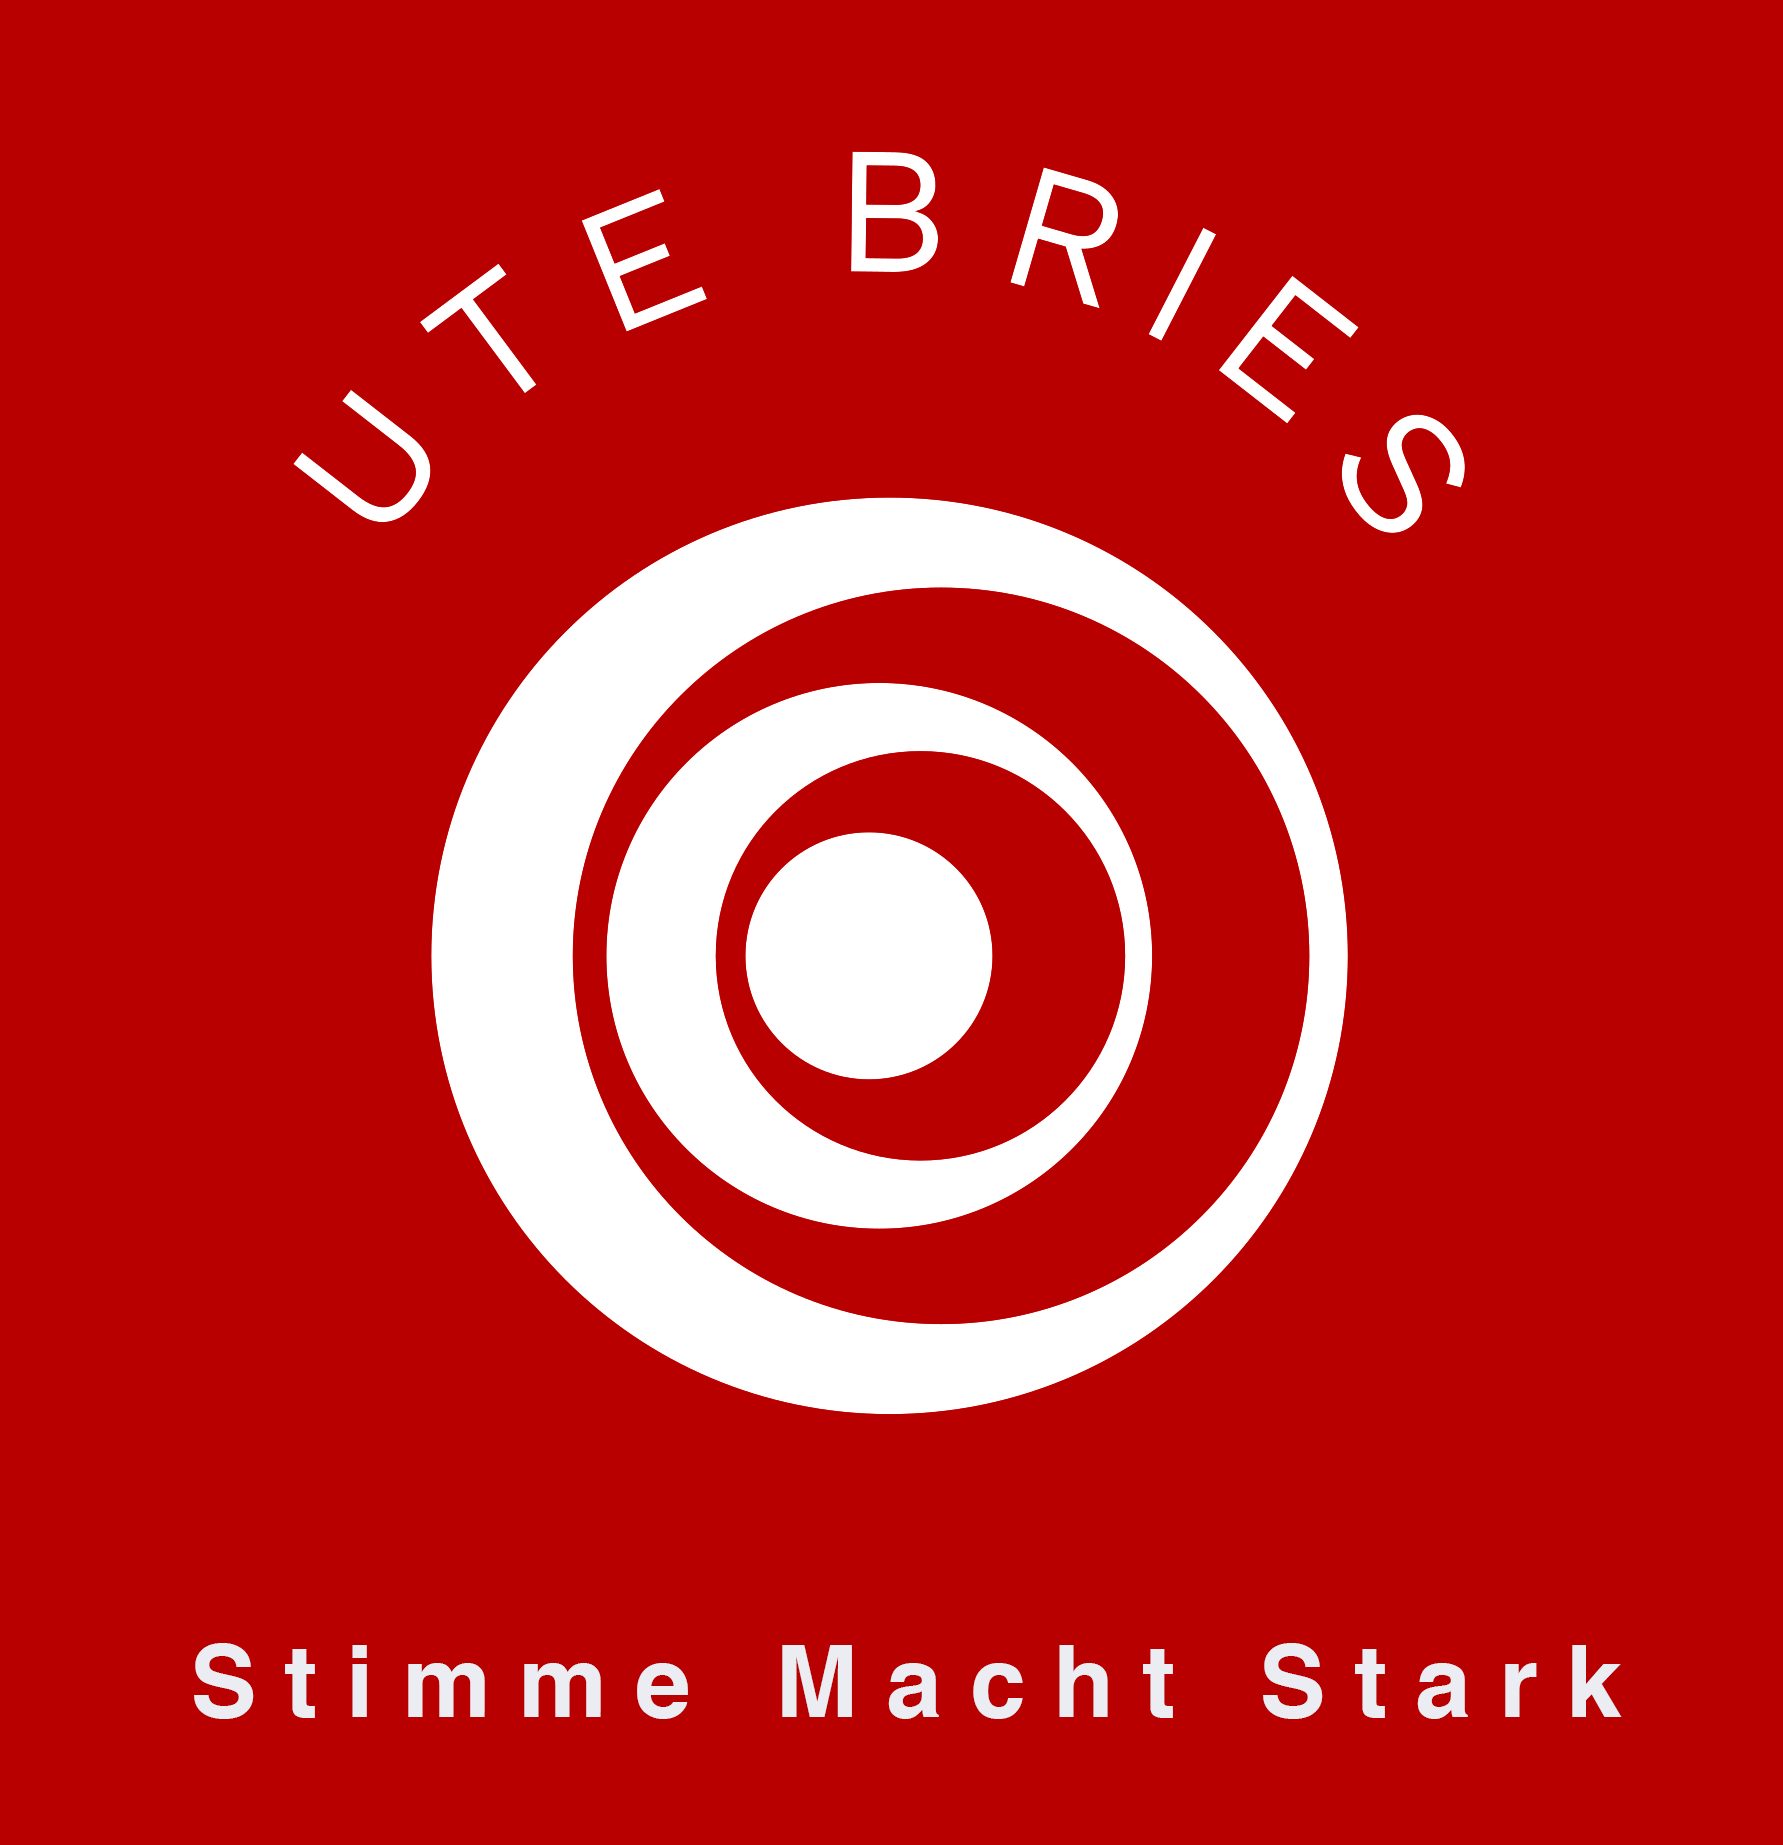 Ute Bries